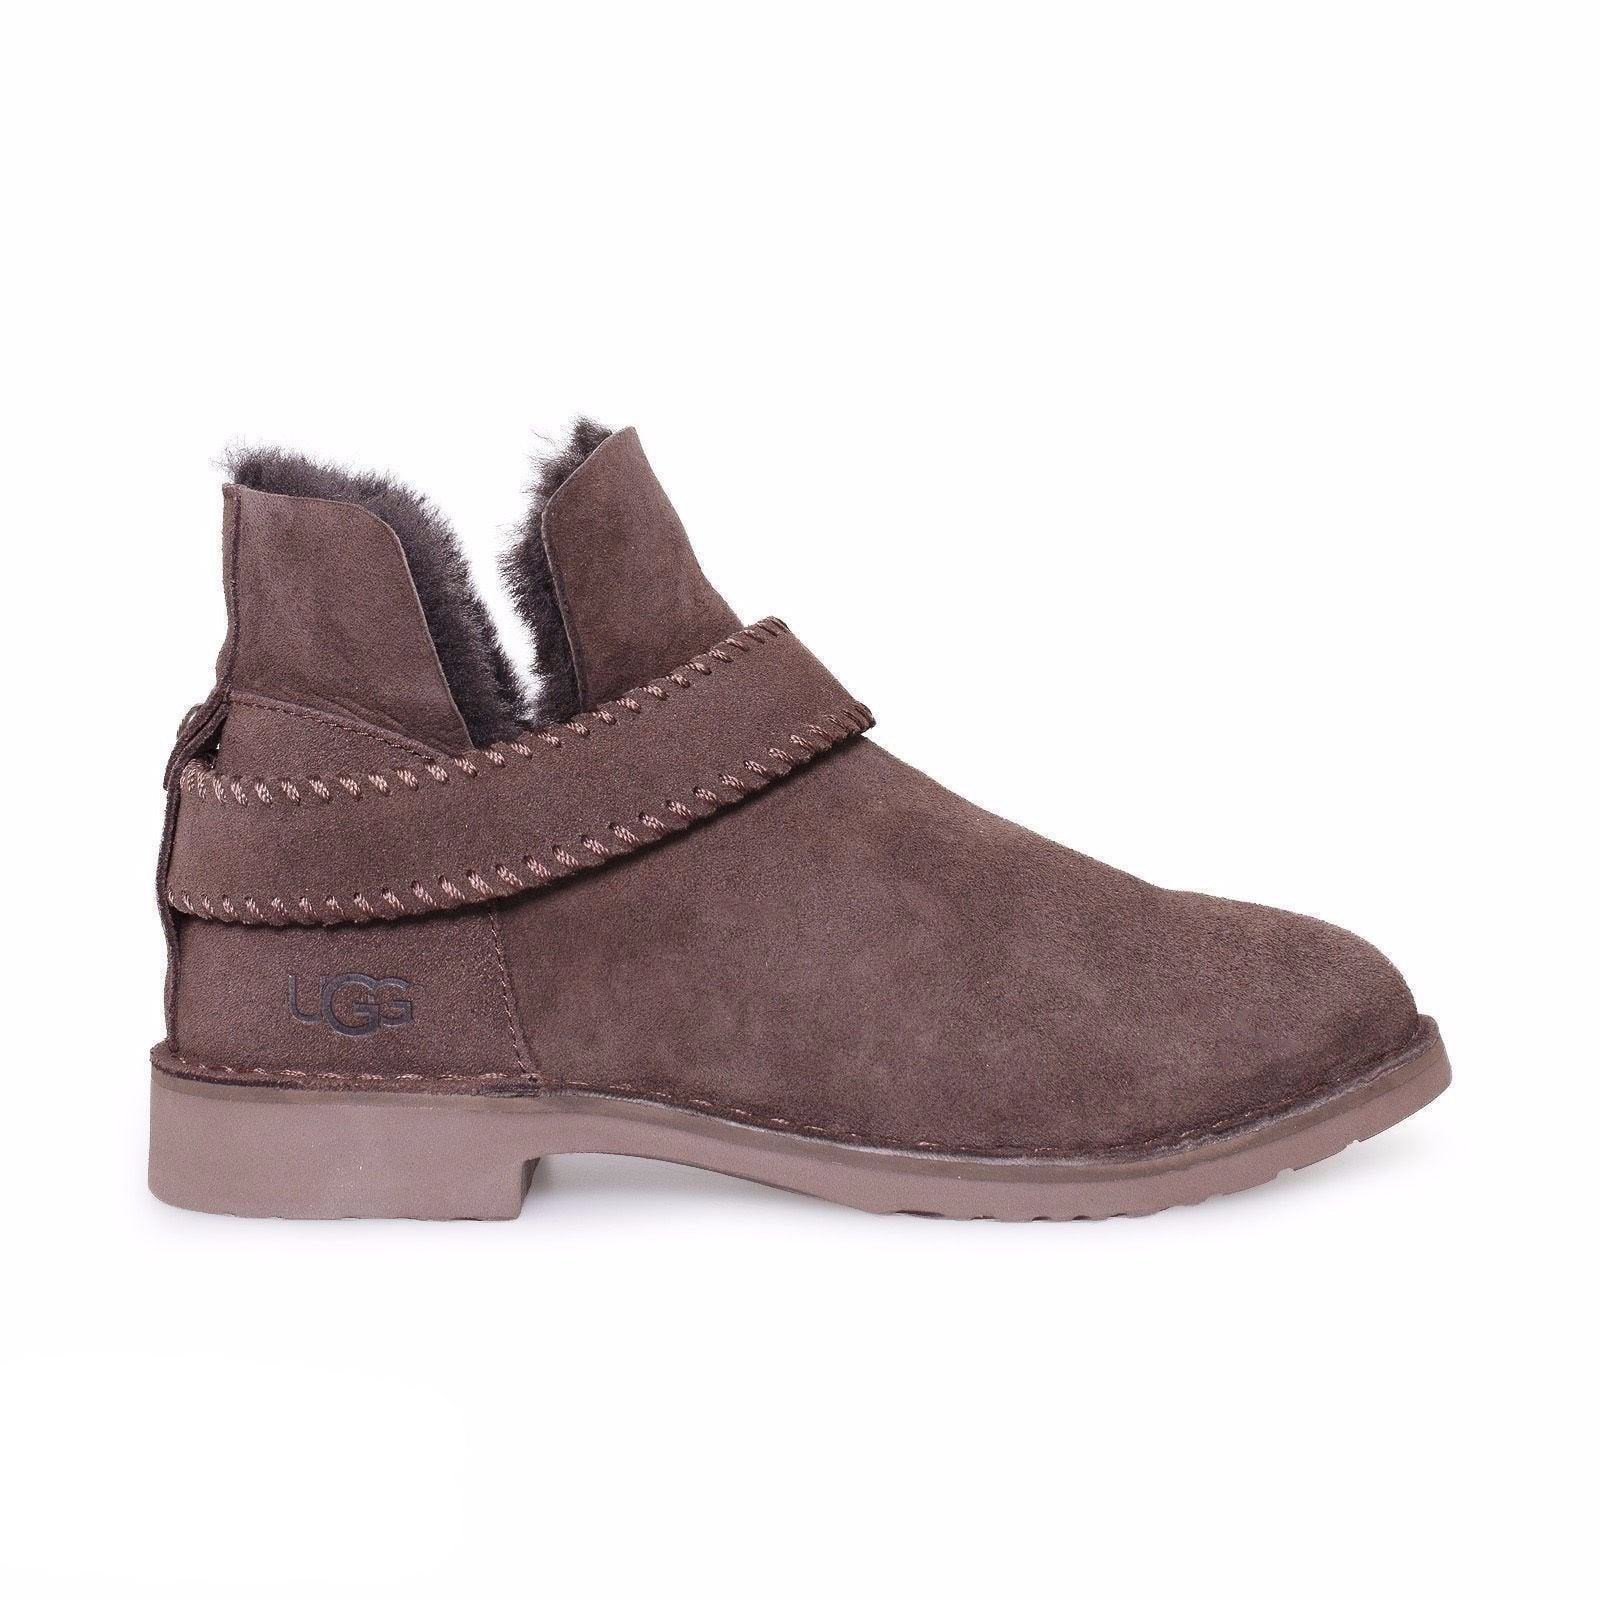 d44ea2c9f49 UGG Mckay Chocolate Boots